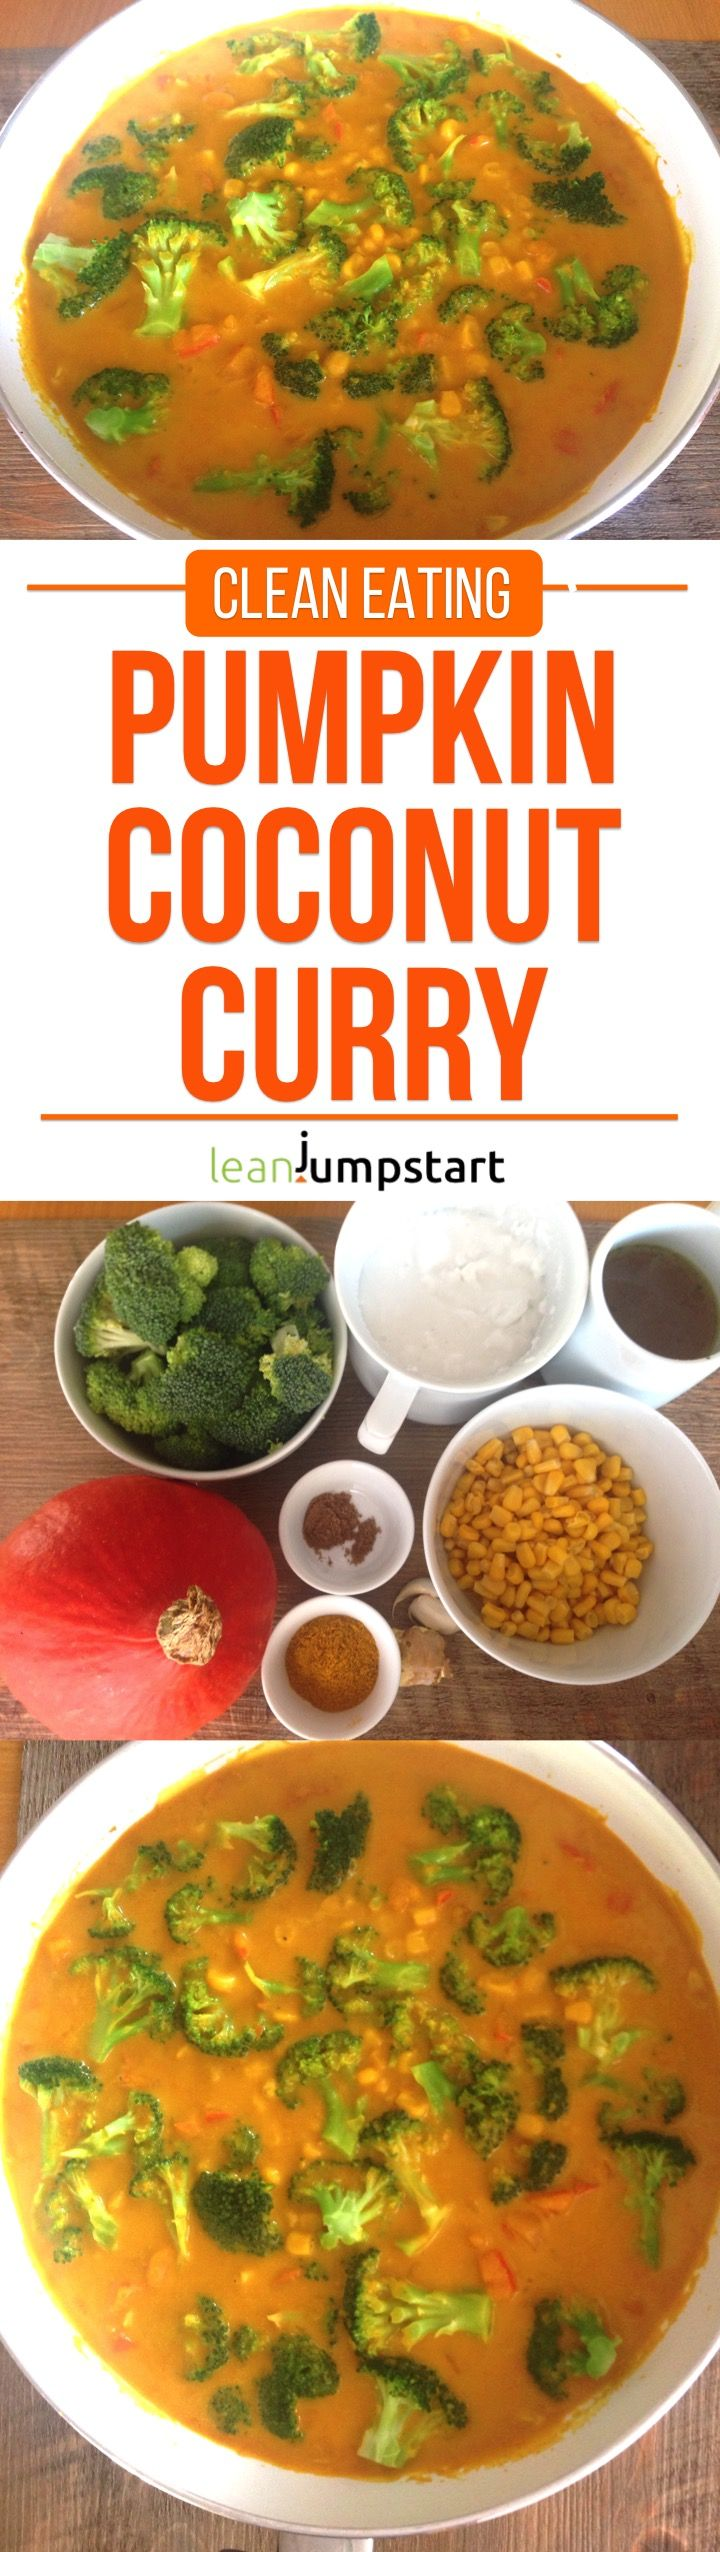 pumpkin coconut curry: a simple, filling - yet lean clean eating dish via @leanjumpstart